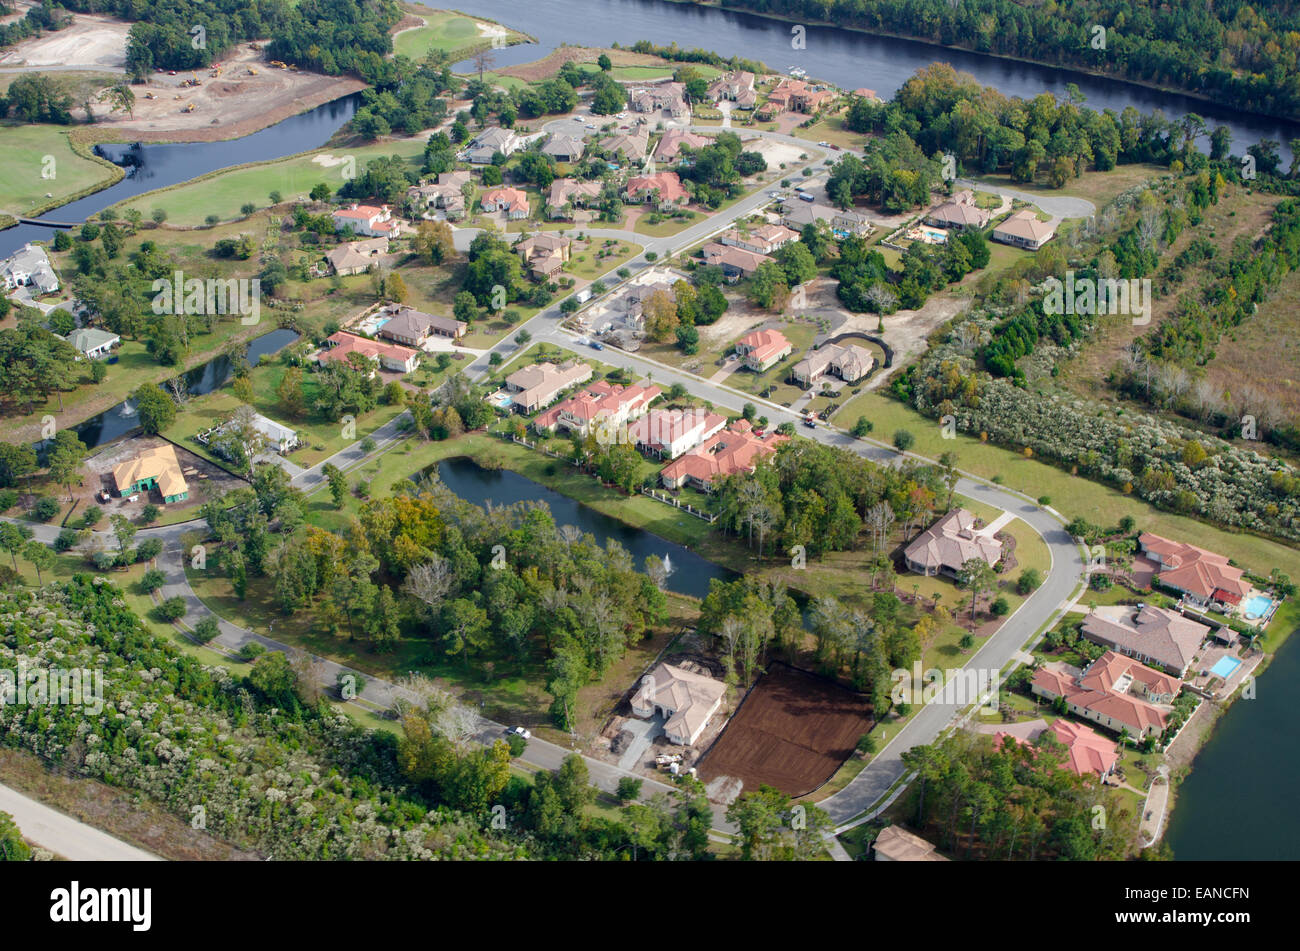 Aerial View of urban sprawl and the Grande Dunes community in Myrtle Beach, South Carolina. All logos have been - Stock Image